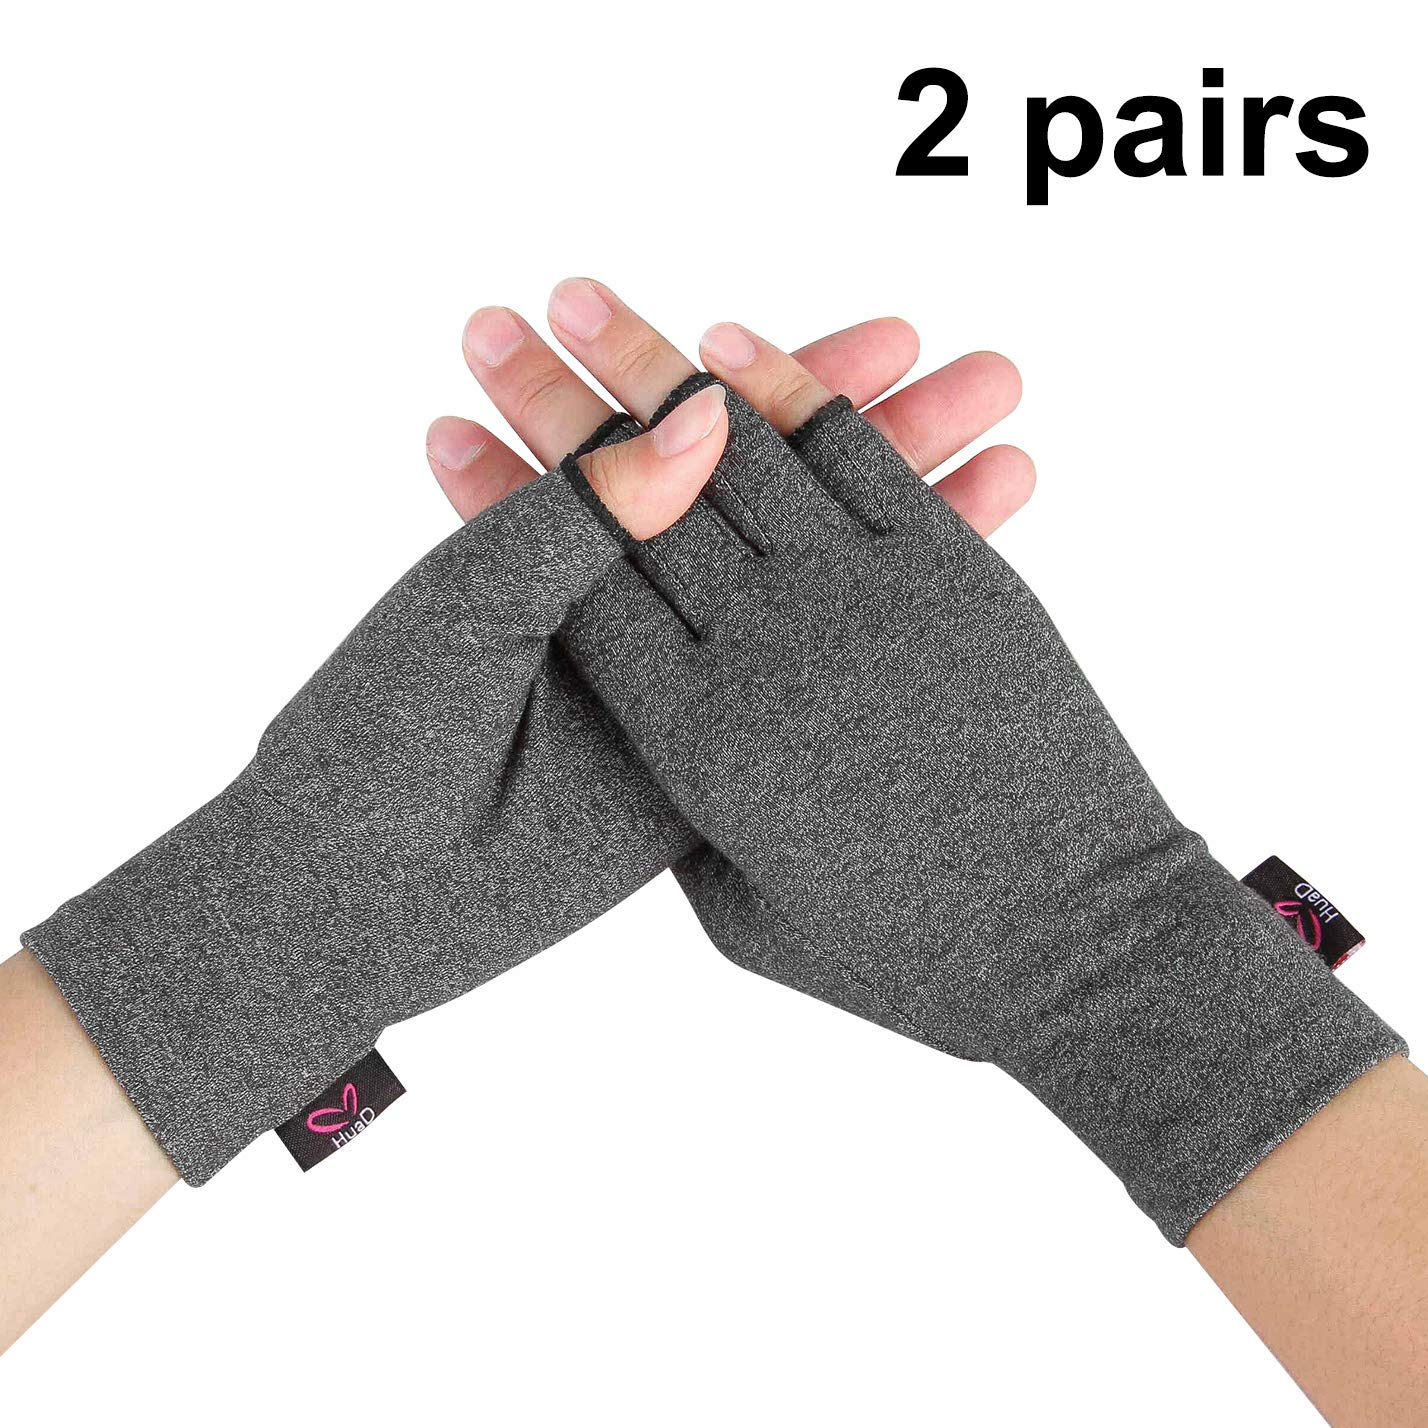 2 Pairs - Compression Arthritis Gloves for Women and Men, Fingerless Design to Relieve Pain from Rheumatoid Arthritis and Osteoarthritis (Grey, Small)